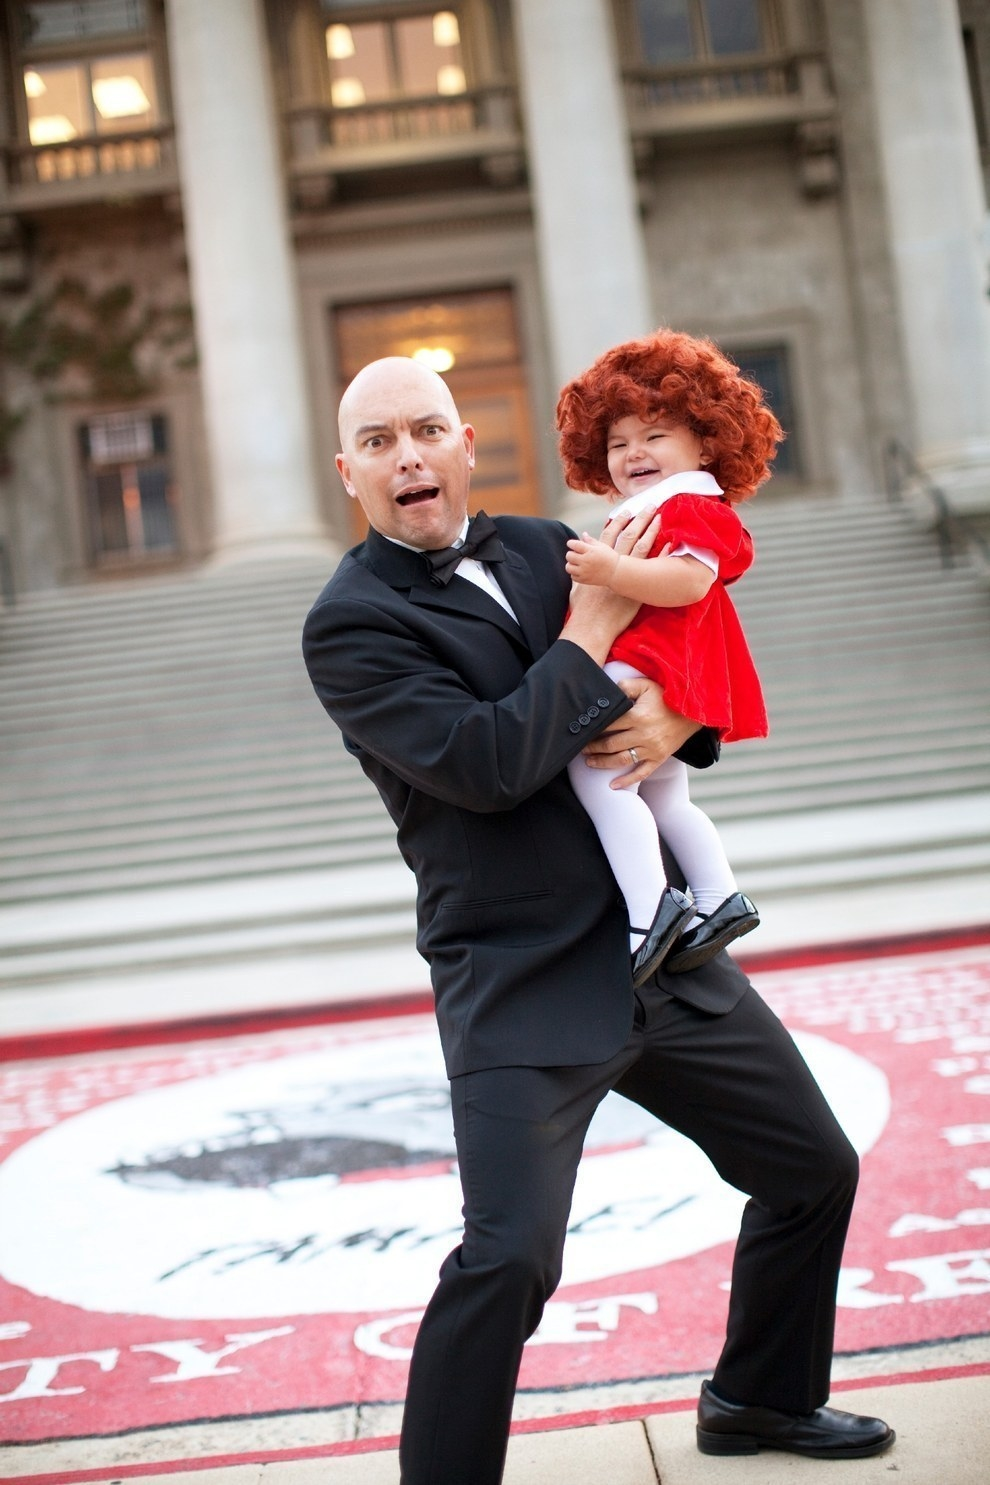 Since then she's dressed up as Annie alongside her dad, Christopher, as Daddy Warbucks...